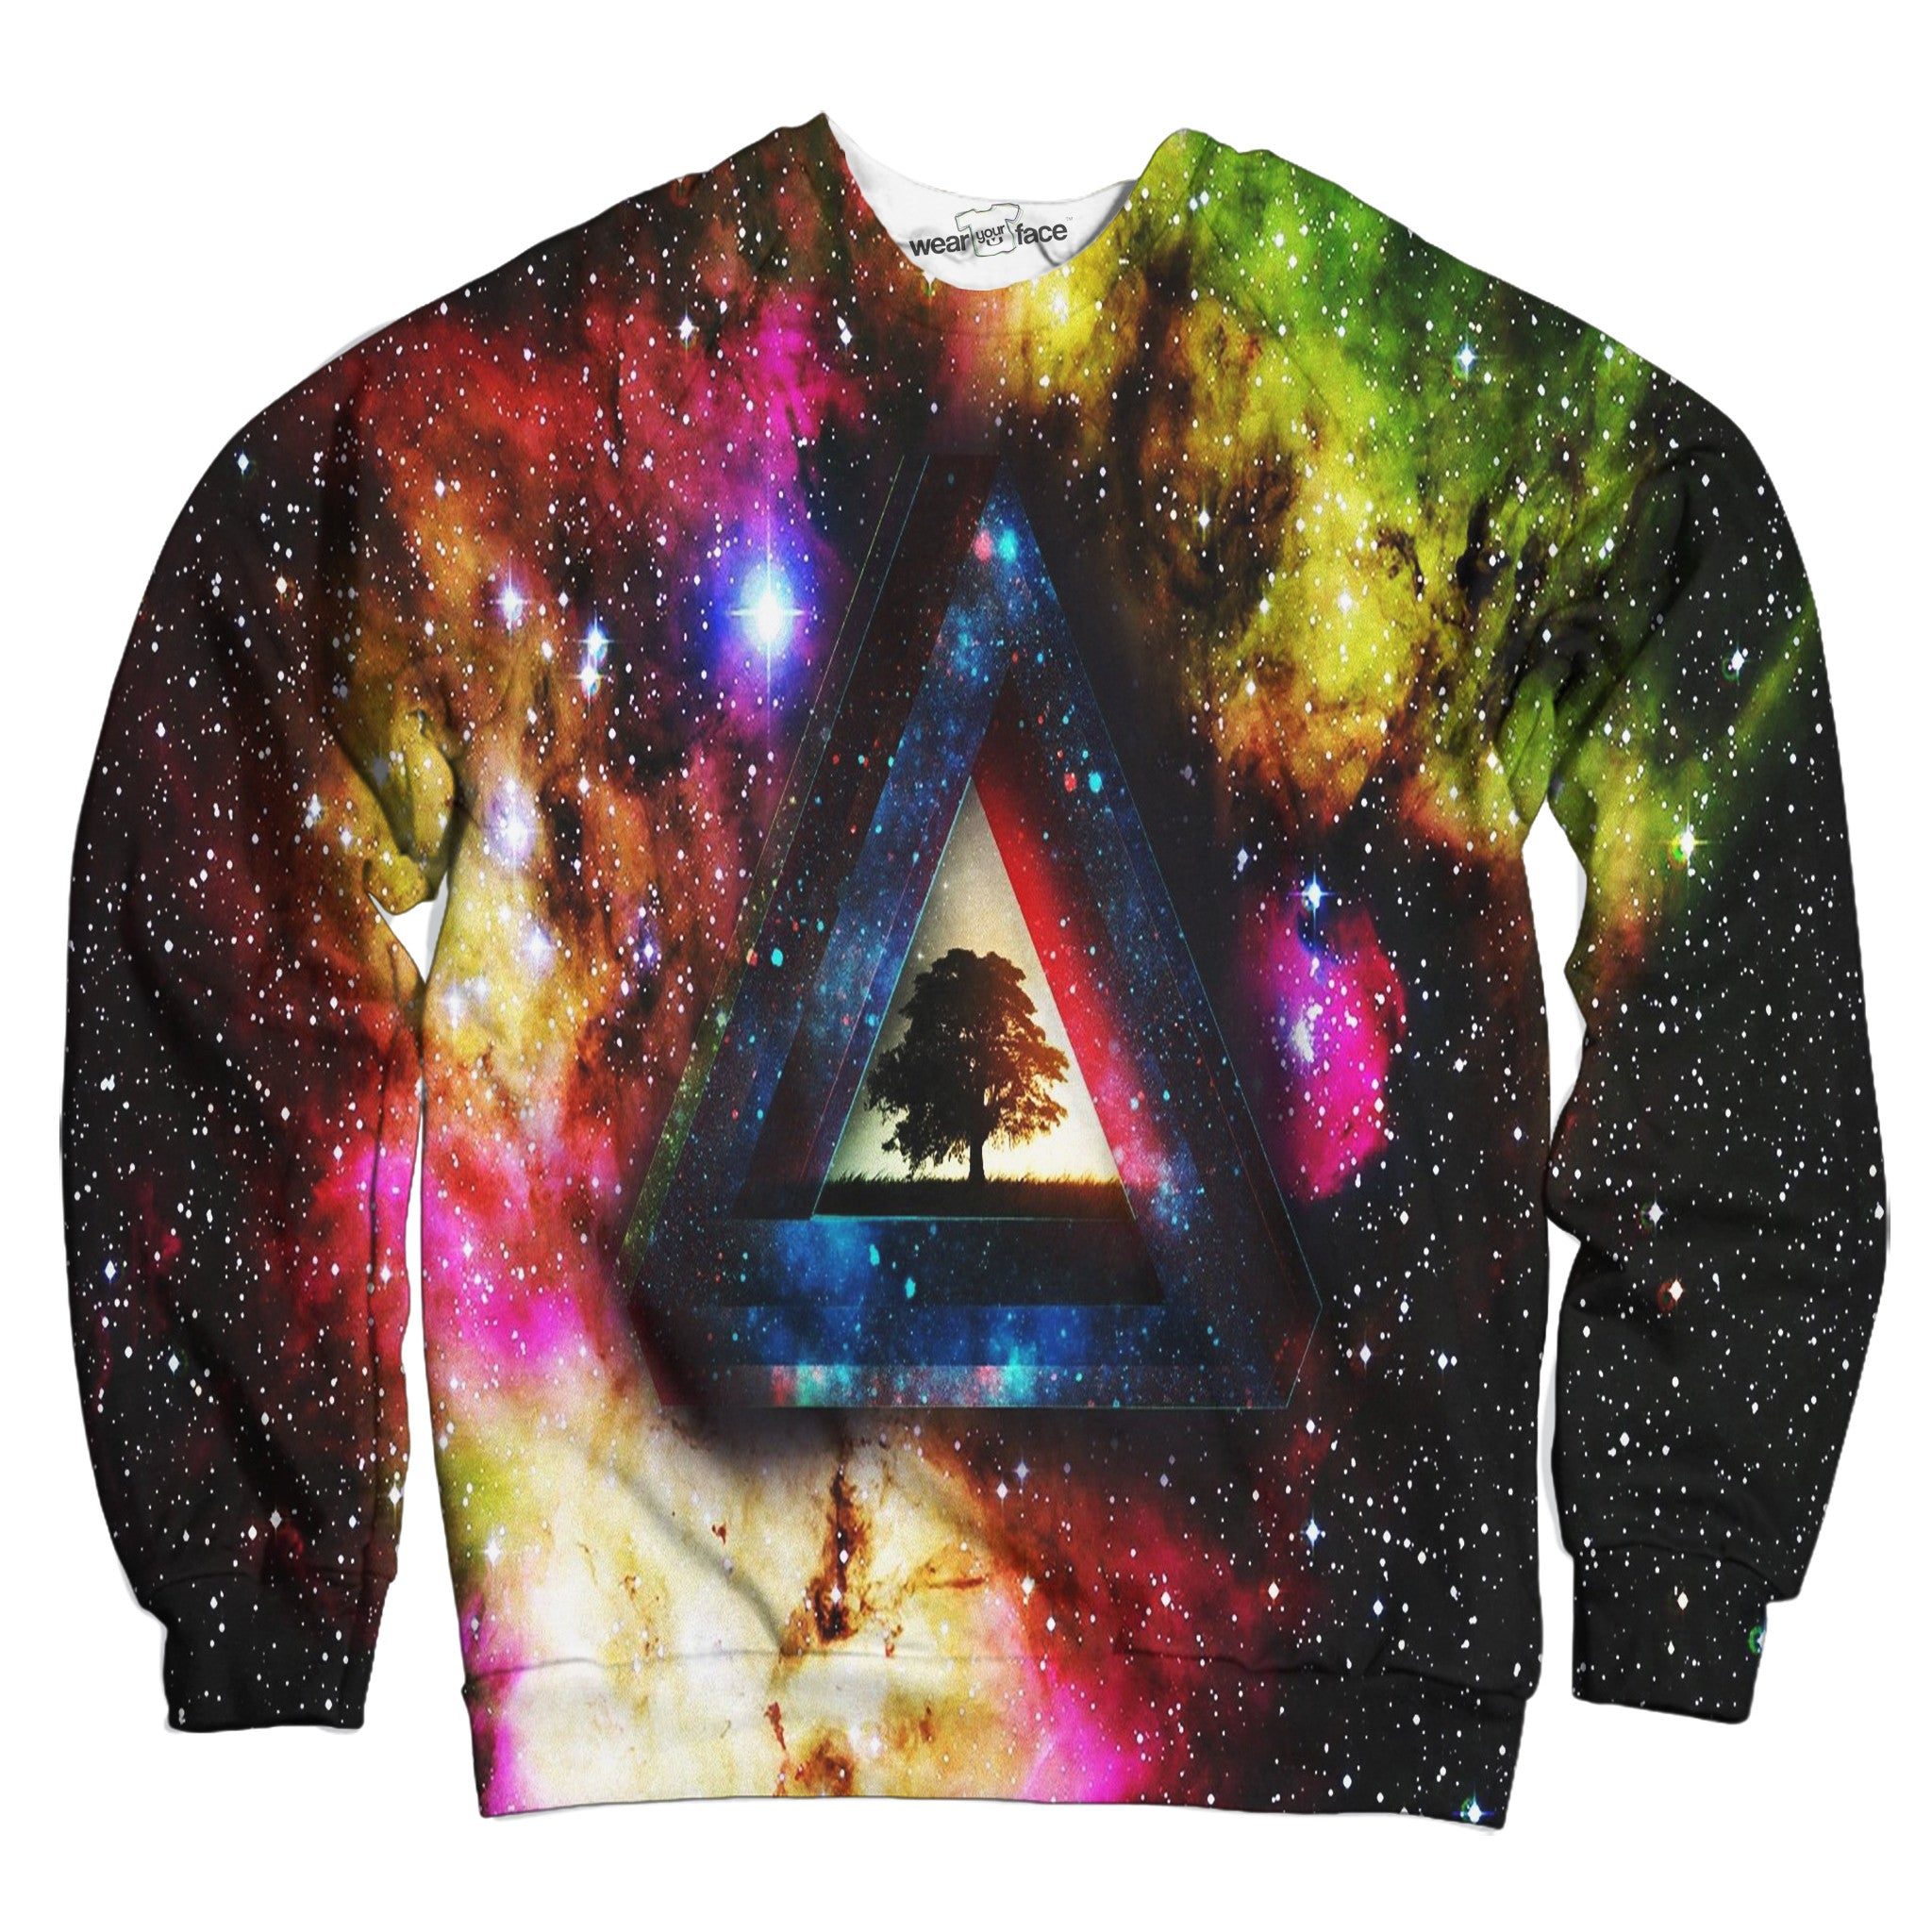 Intergalactic Pyramid Sweatshirt